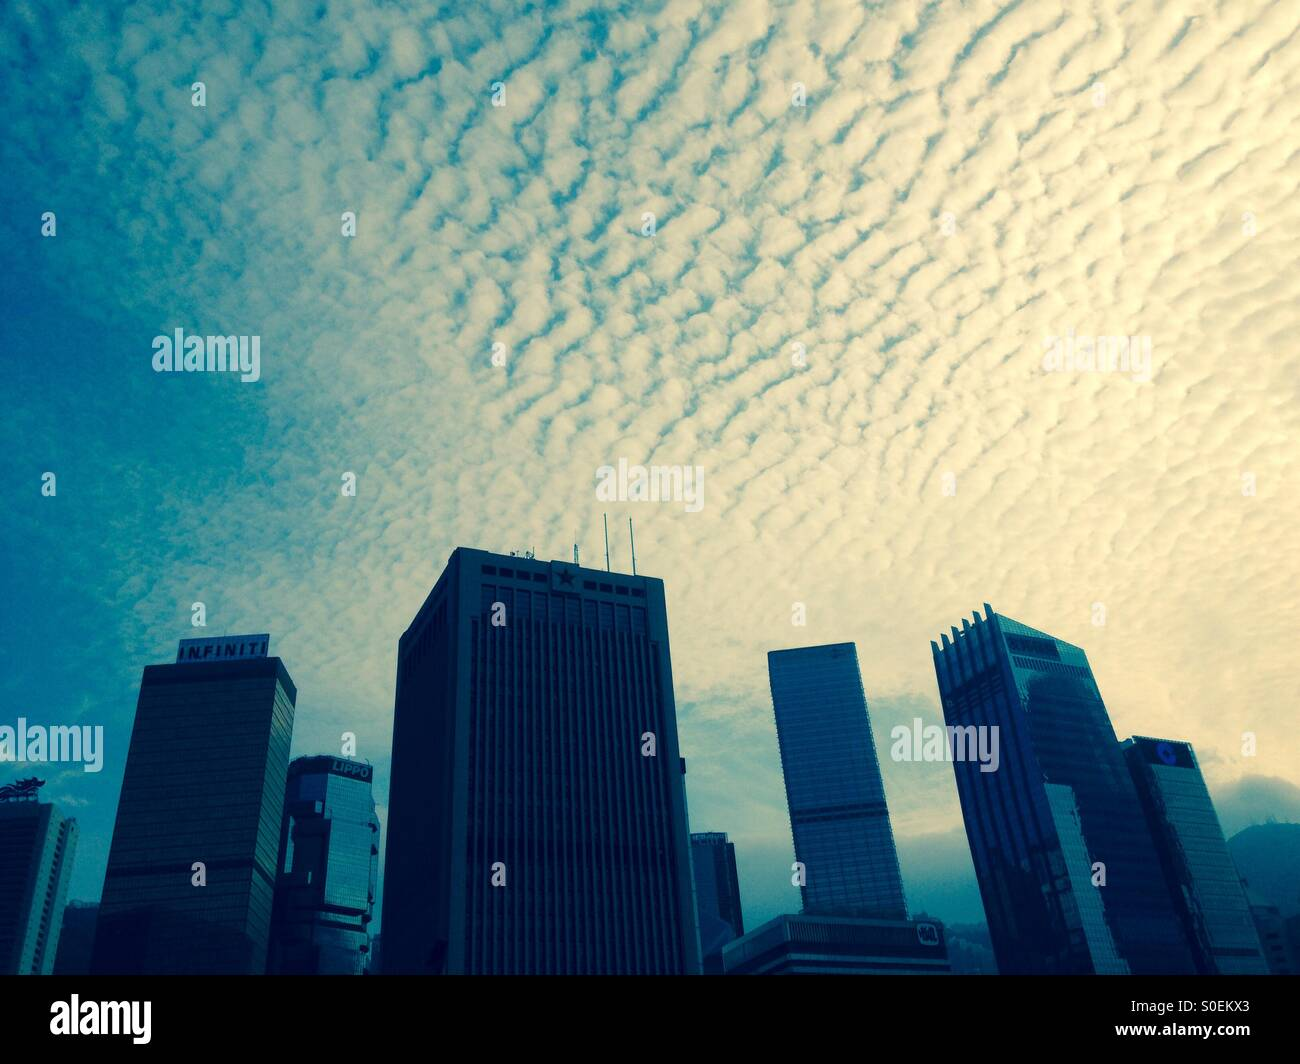 Cloud formation over metropolis - Stock Image